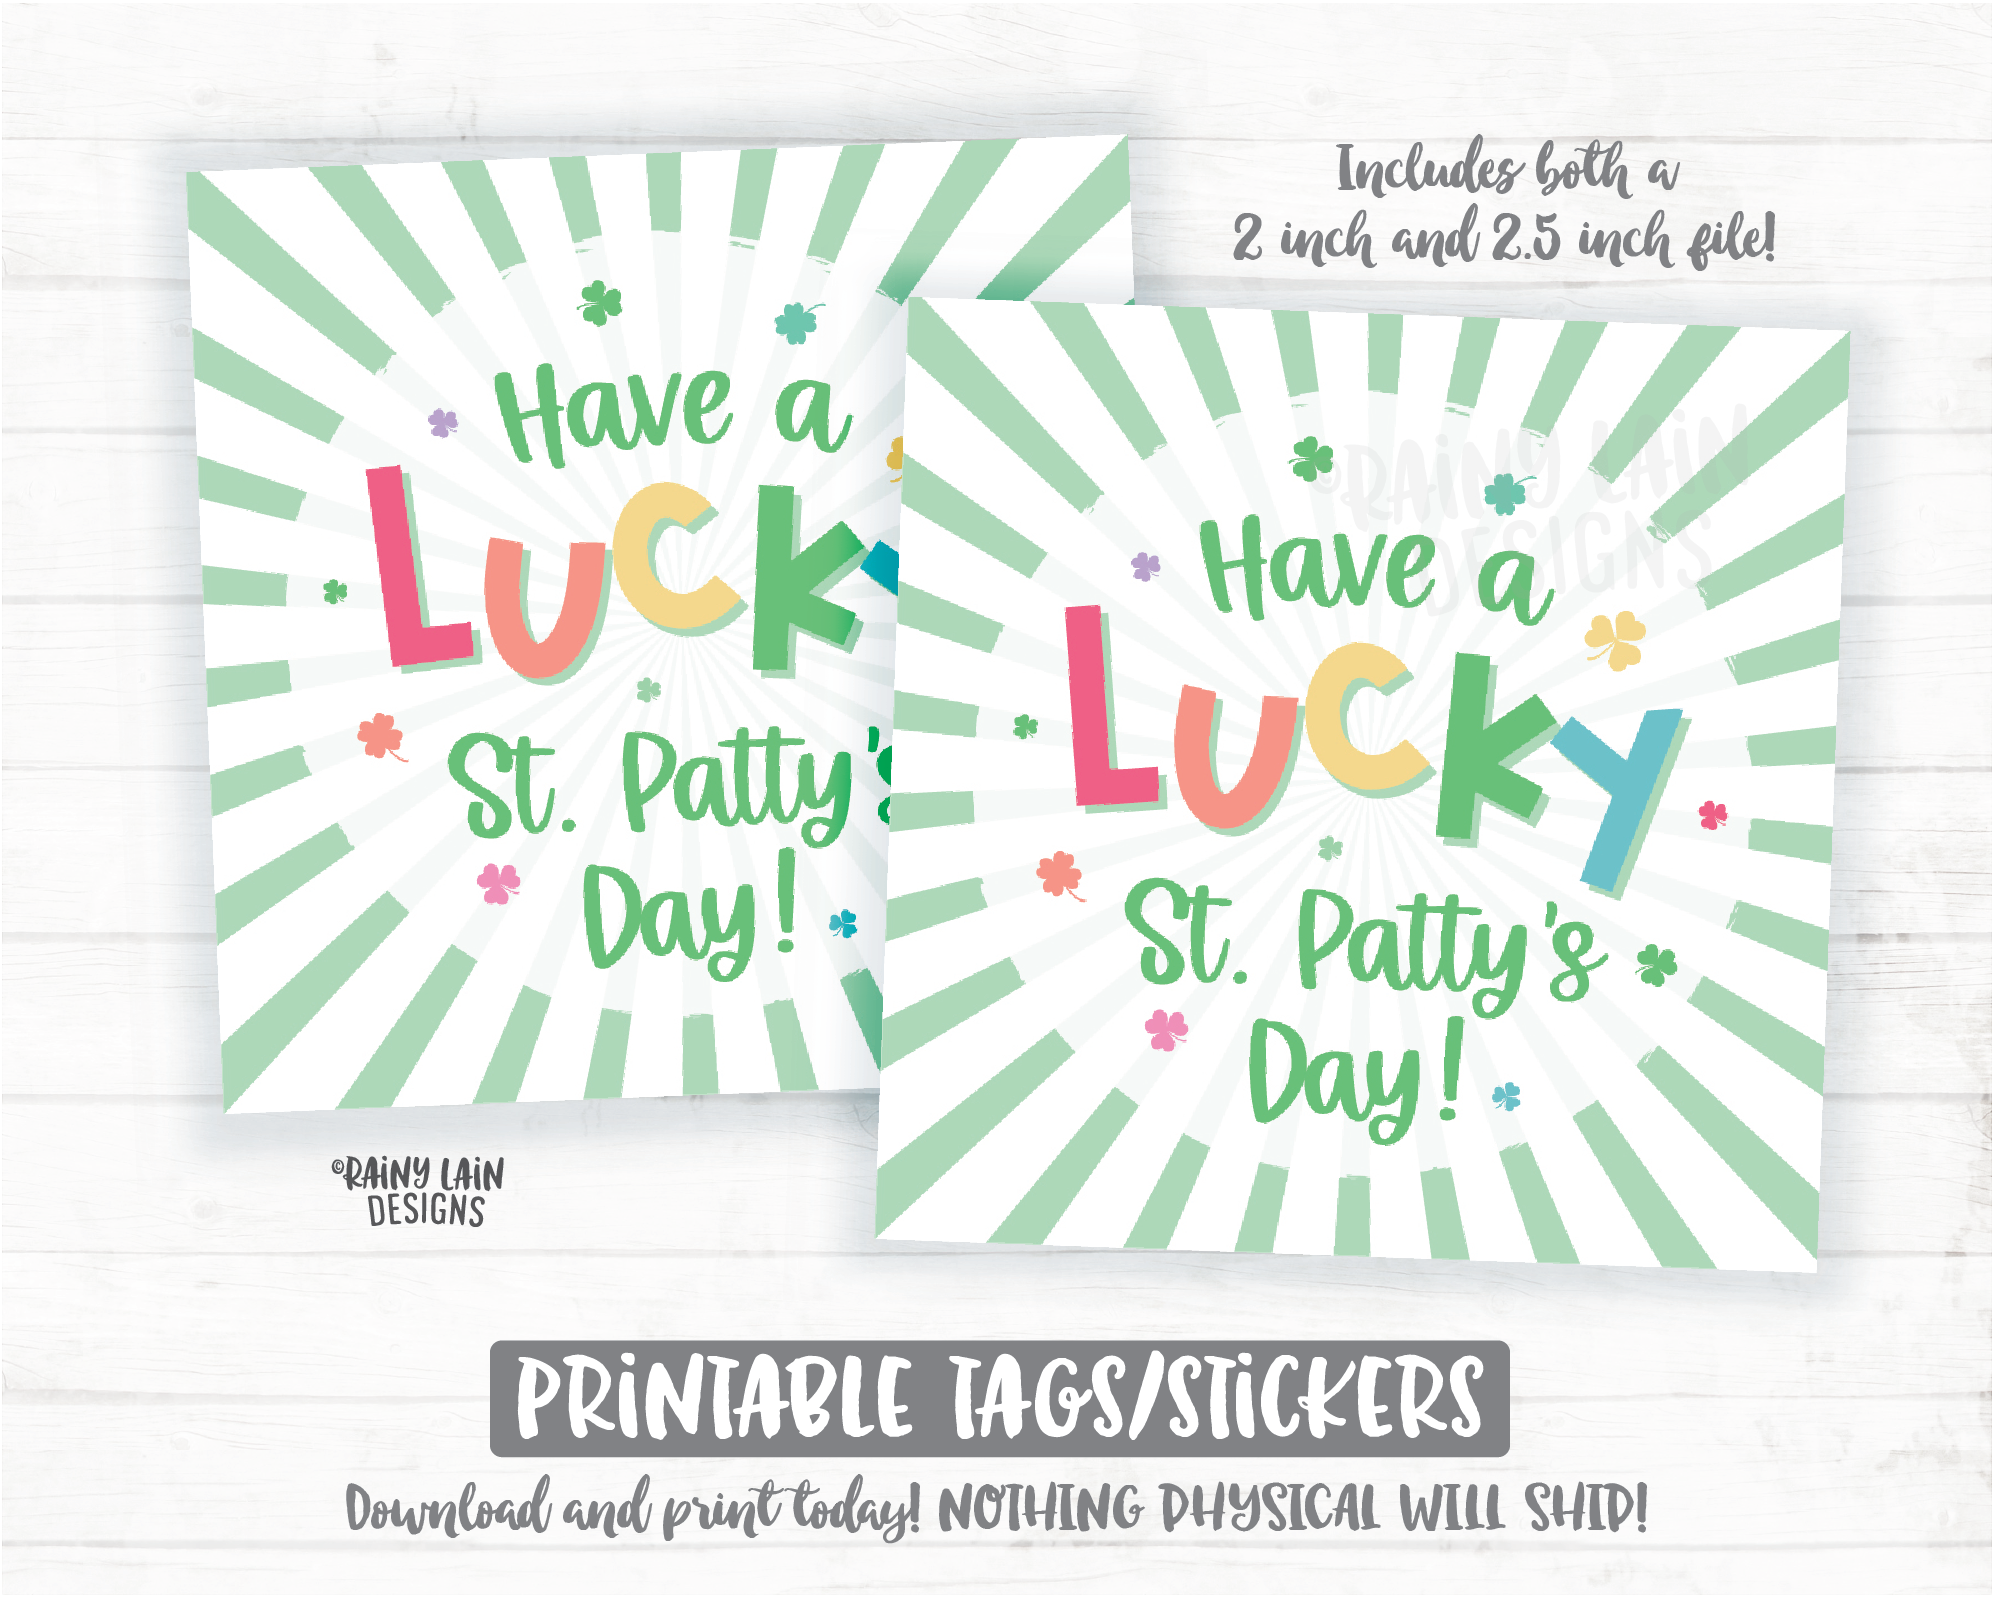 Have a Lucky St Patty's Day Tag St Patrick's Day Lucky Charm Square Cookie Rainbow Shamrocks Printable Cookie Card Instant Download Bakery - St Patrick's Day Cookie Packaging